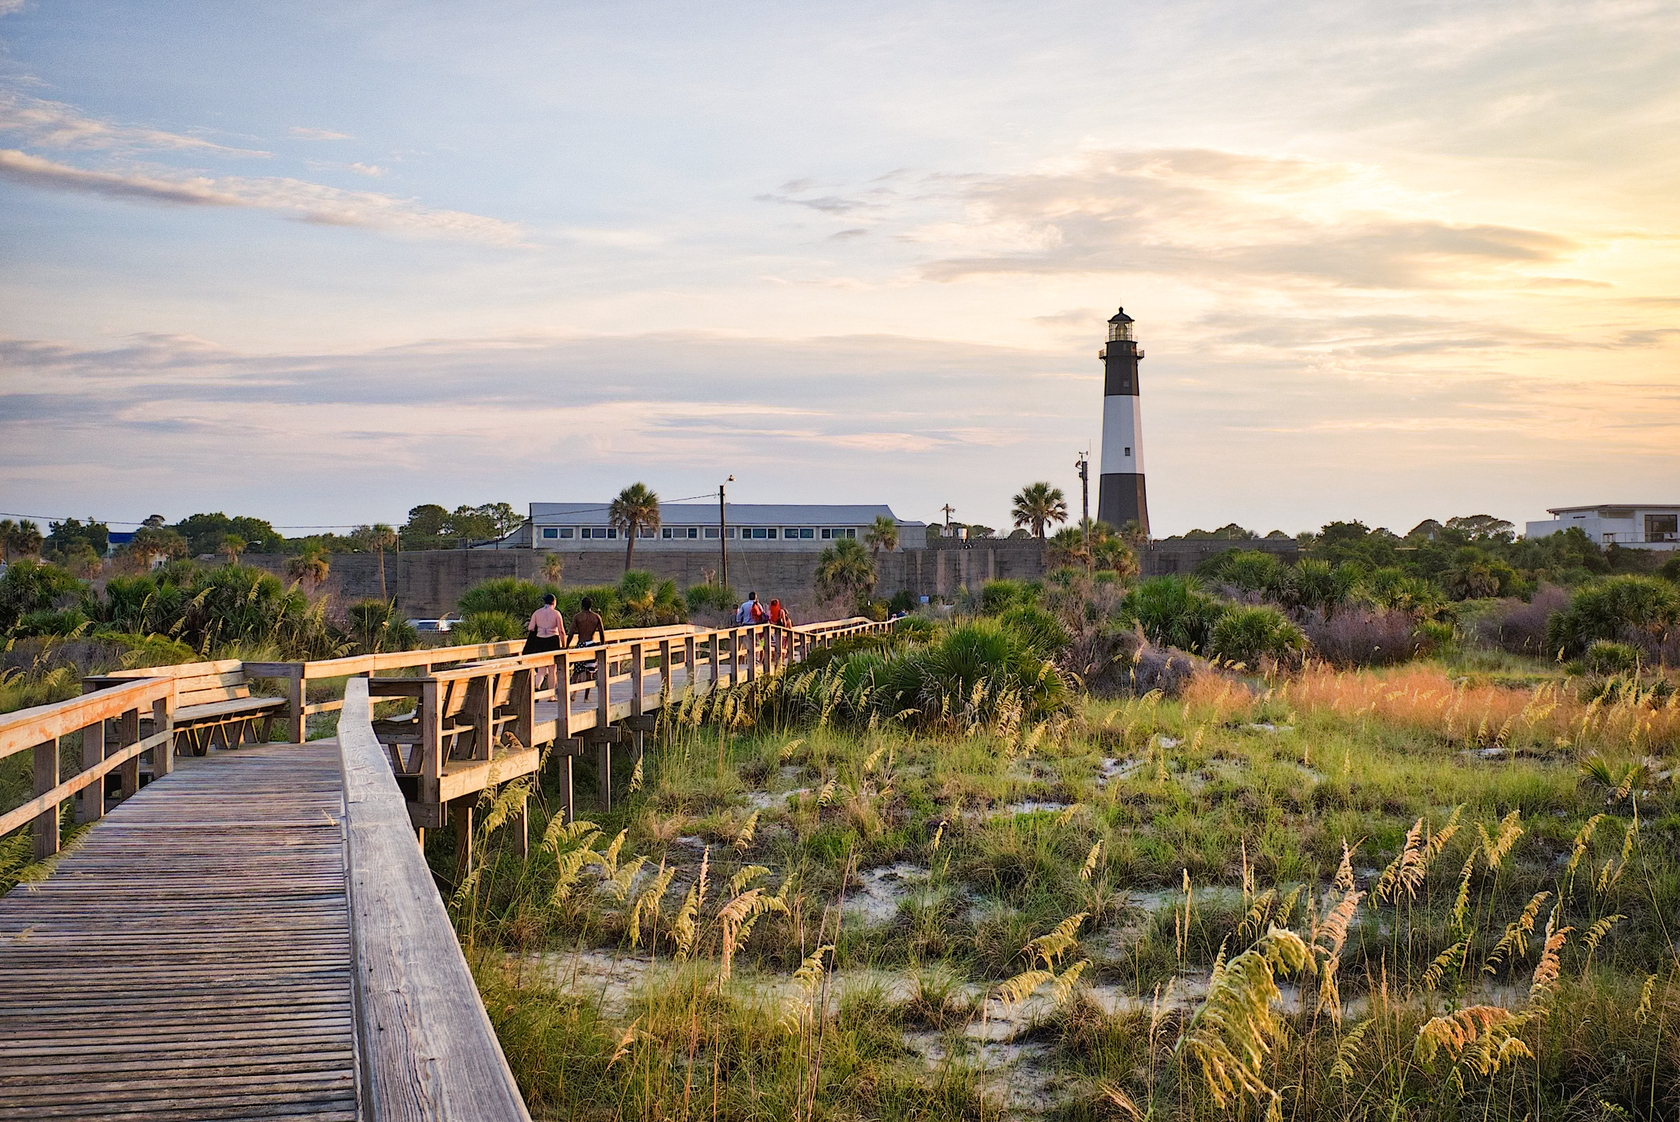 Vacation rental beach houses in Tybee Island